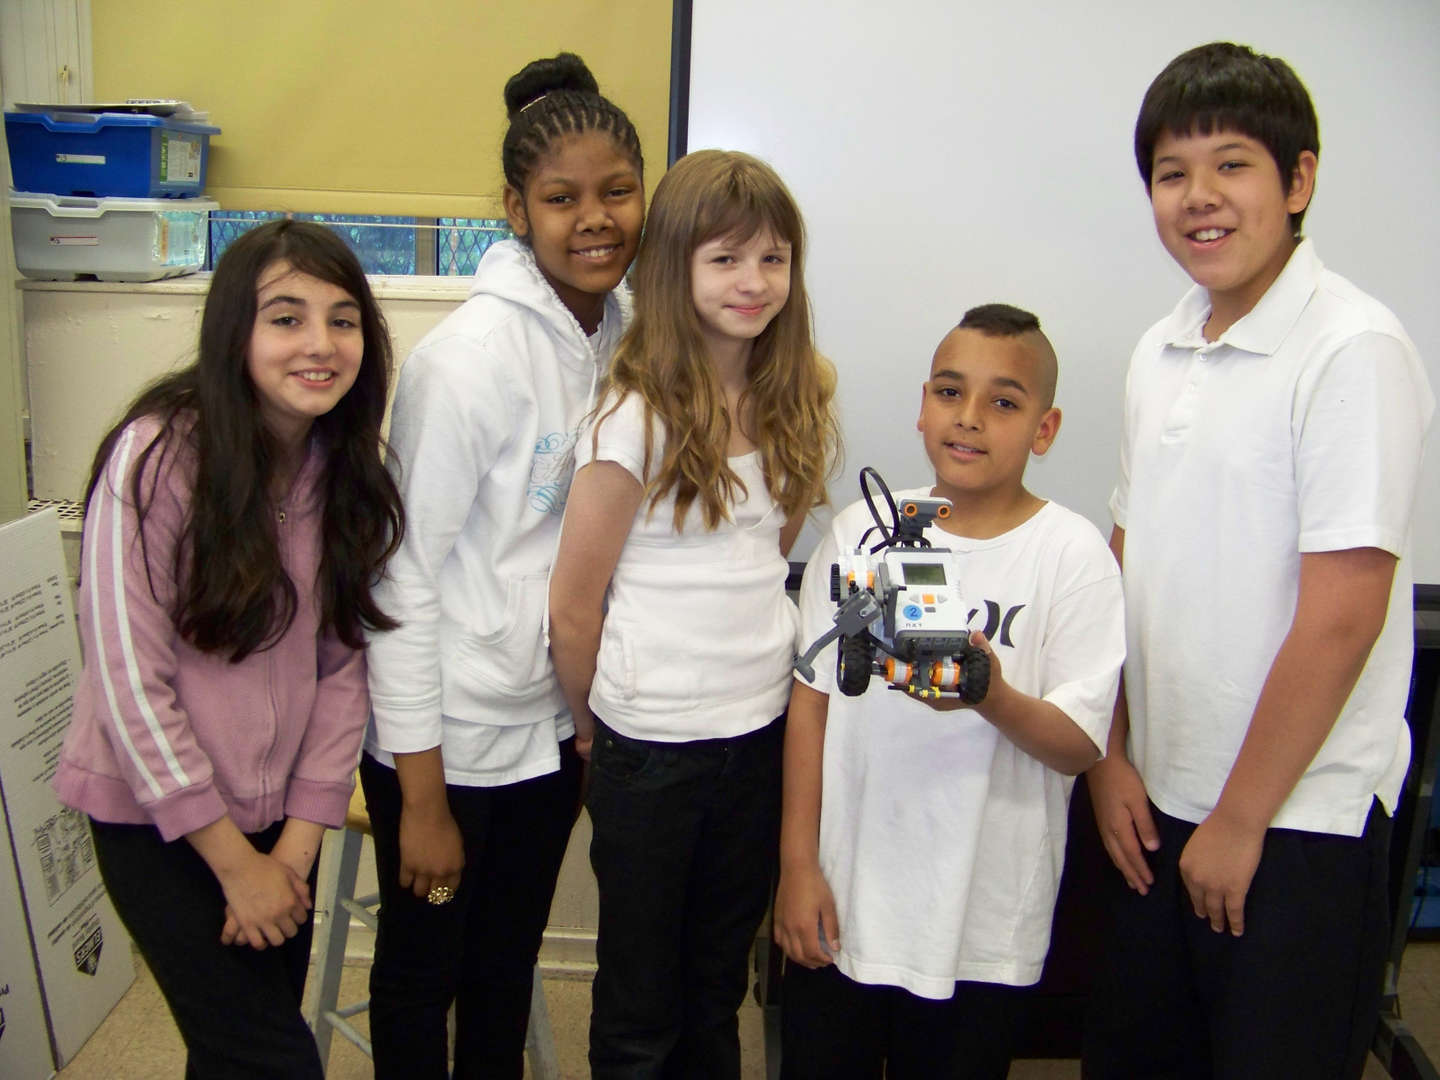 Students holding a Robot for Lego Robotics